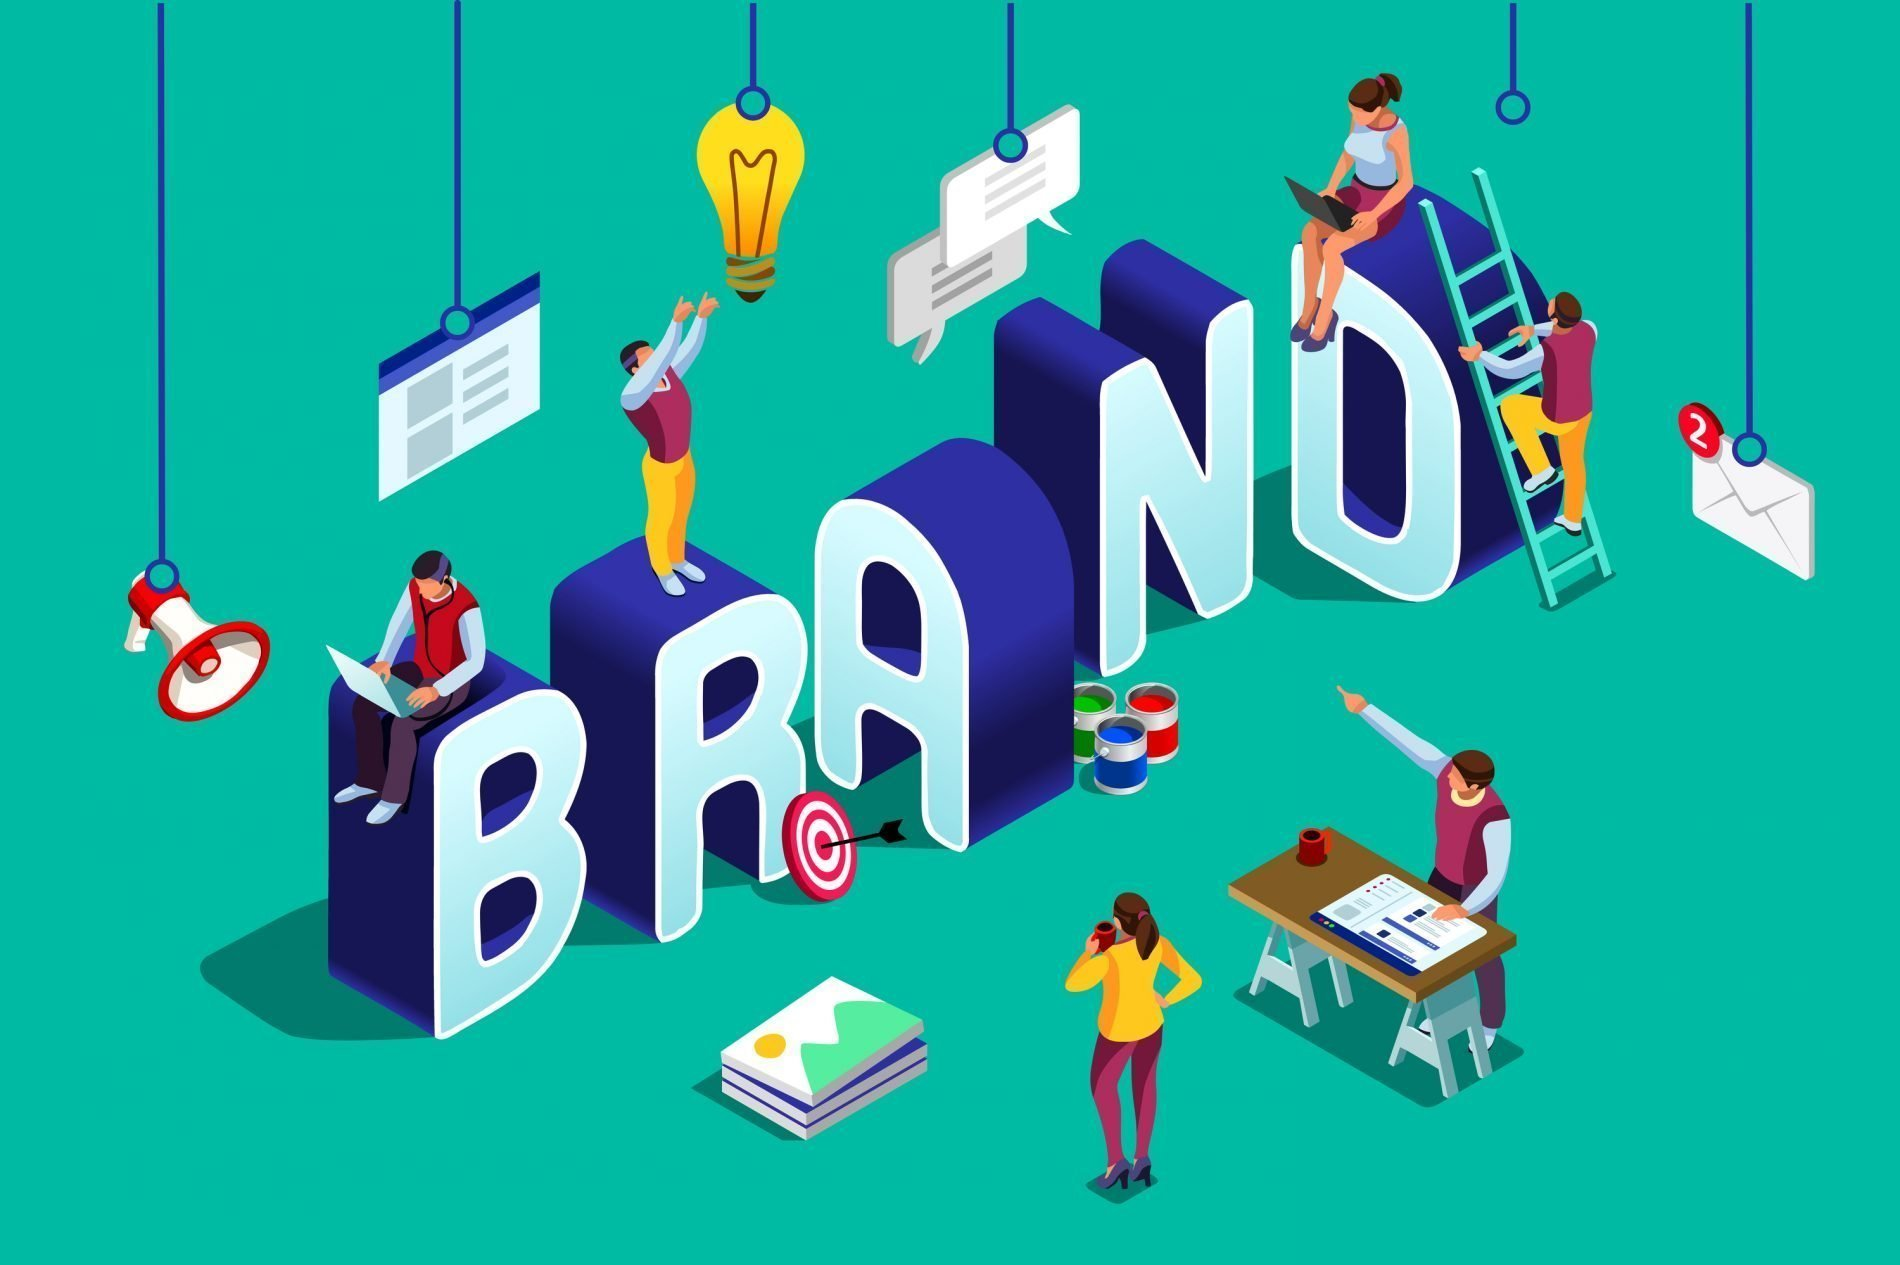 A vector image of people working on design with text of brand being constructed